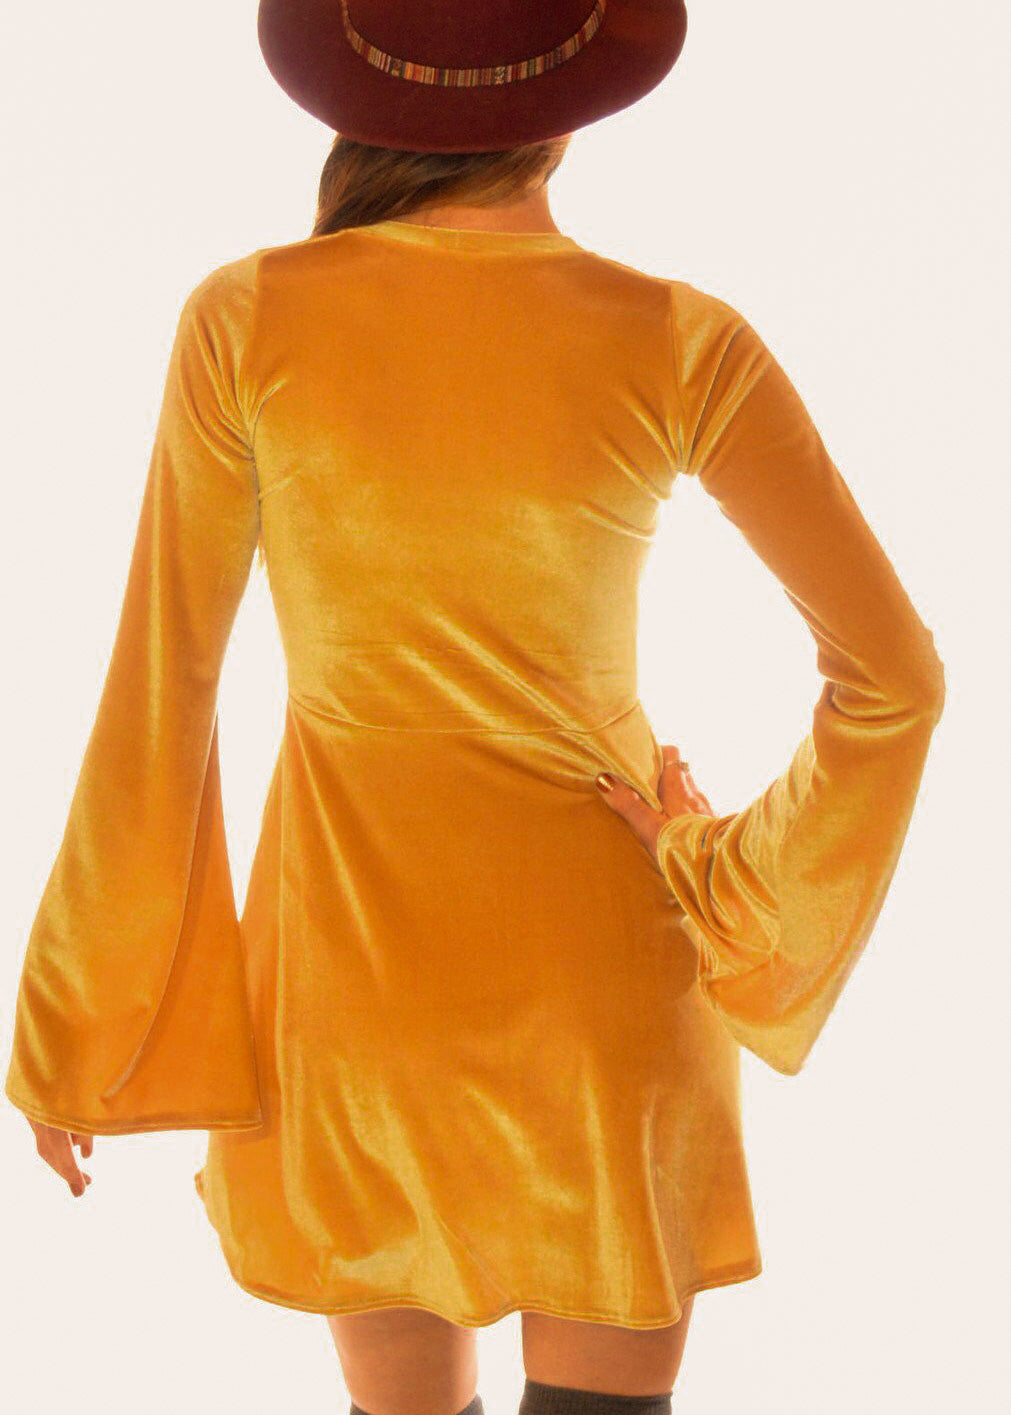 Velvet Lace up Dress with Bell Sleeves in Yellow Gold